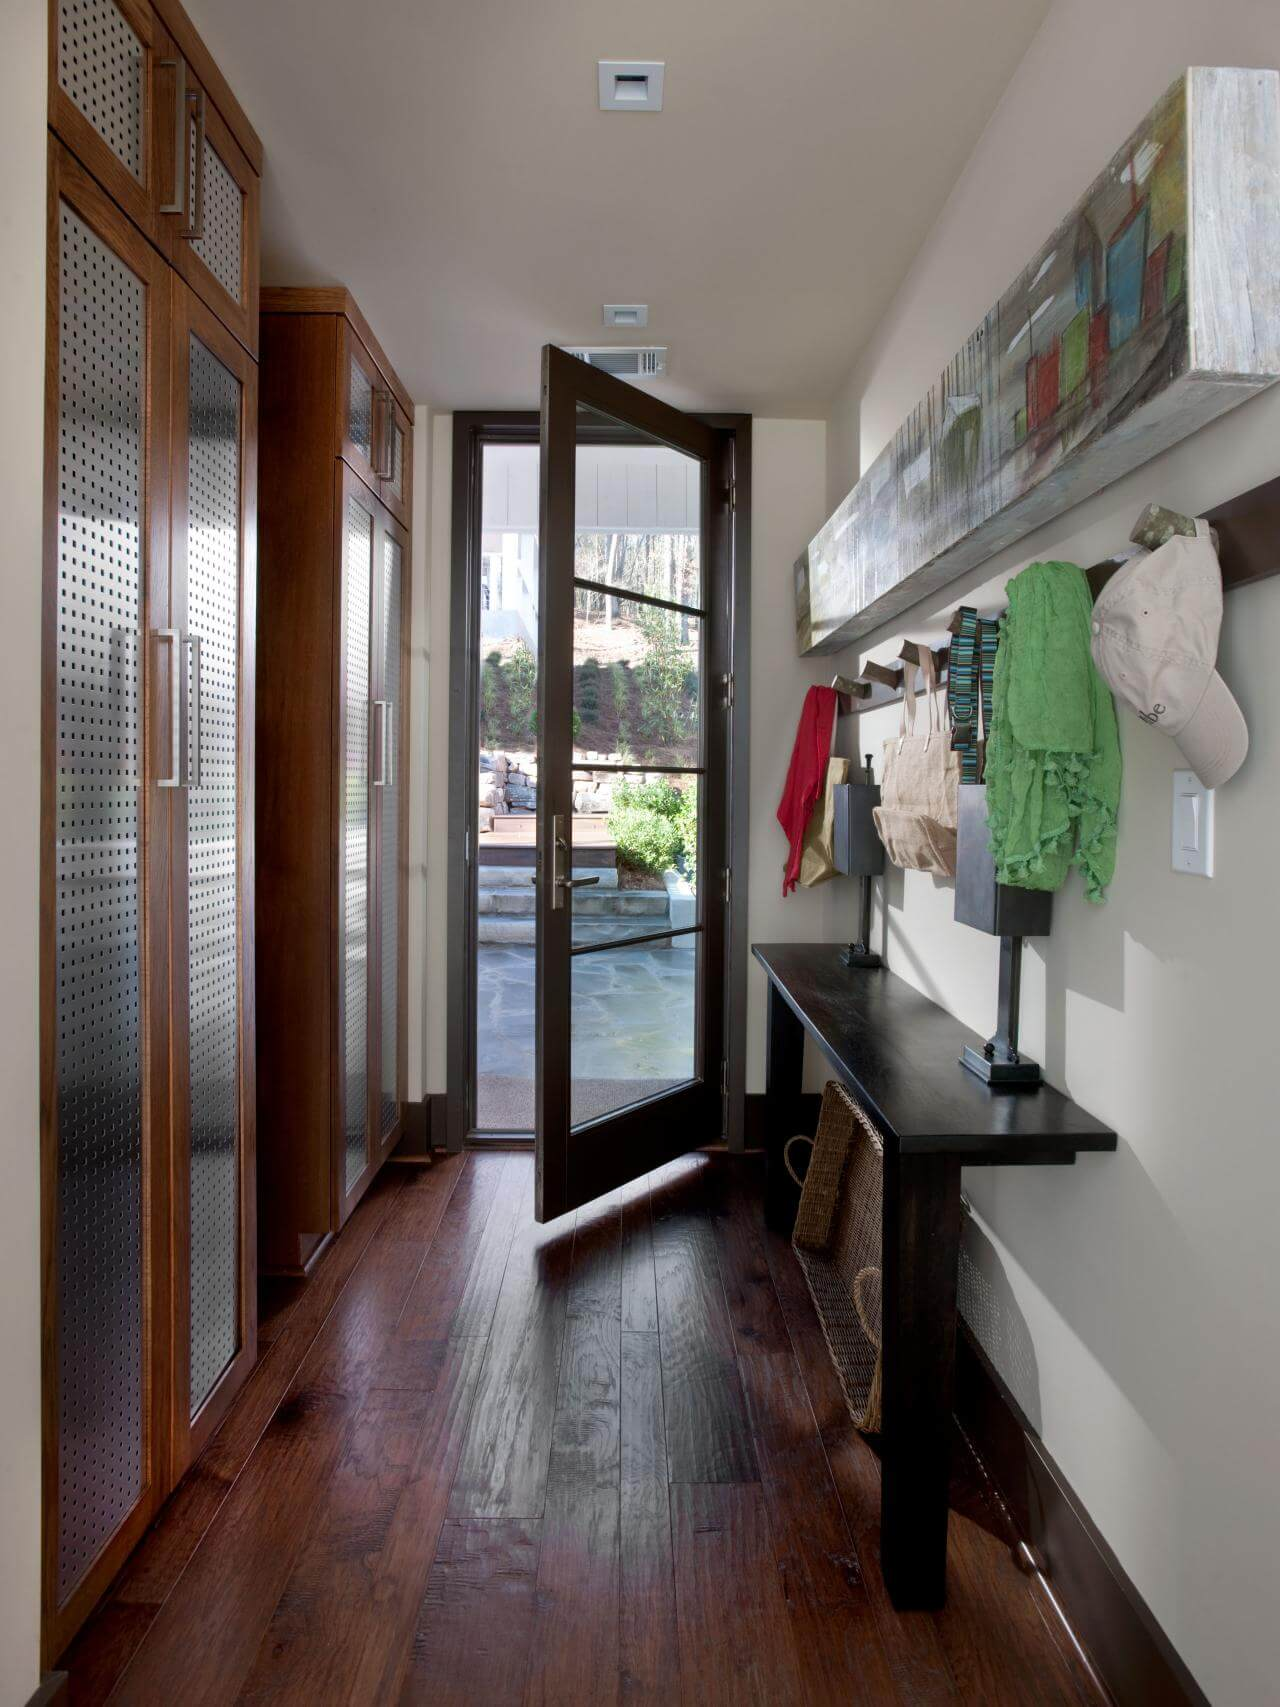 Foyer Mudroom House : Superb mudroom entryway design ideas with benches